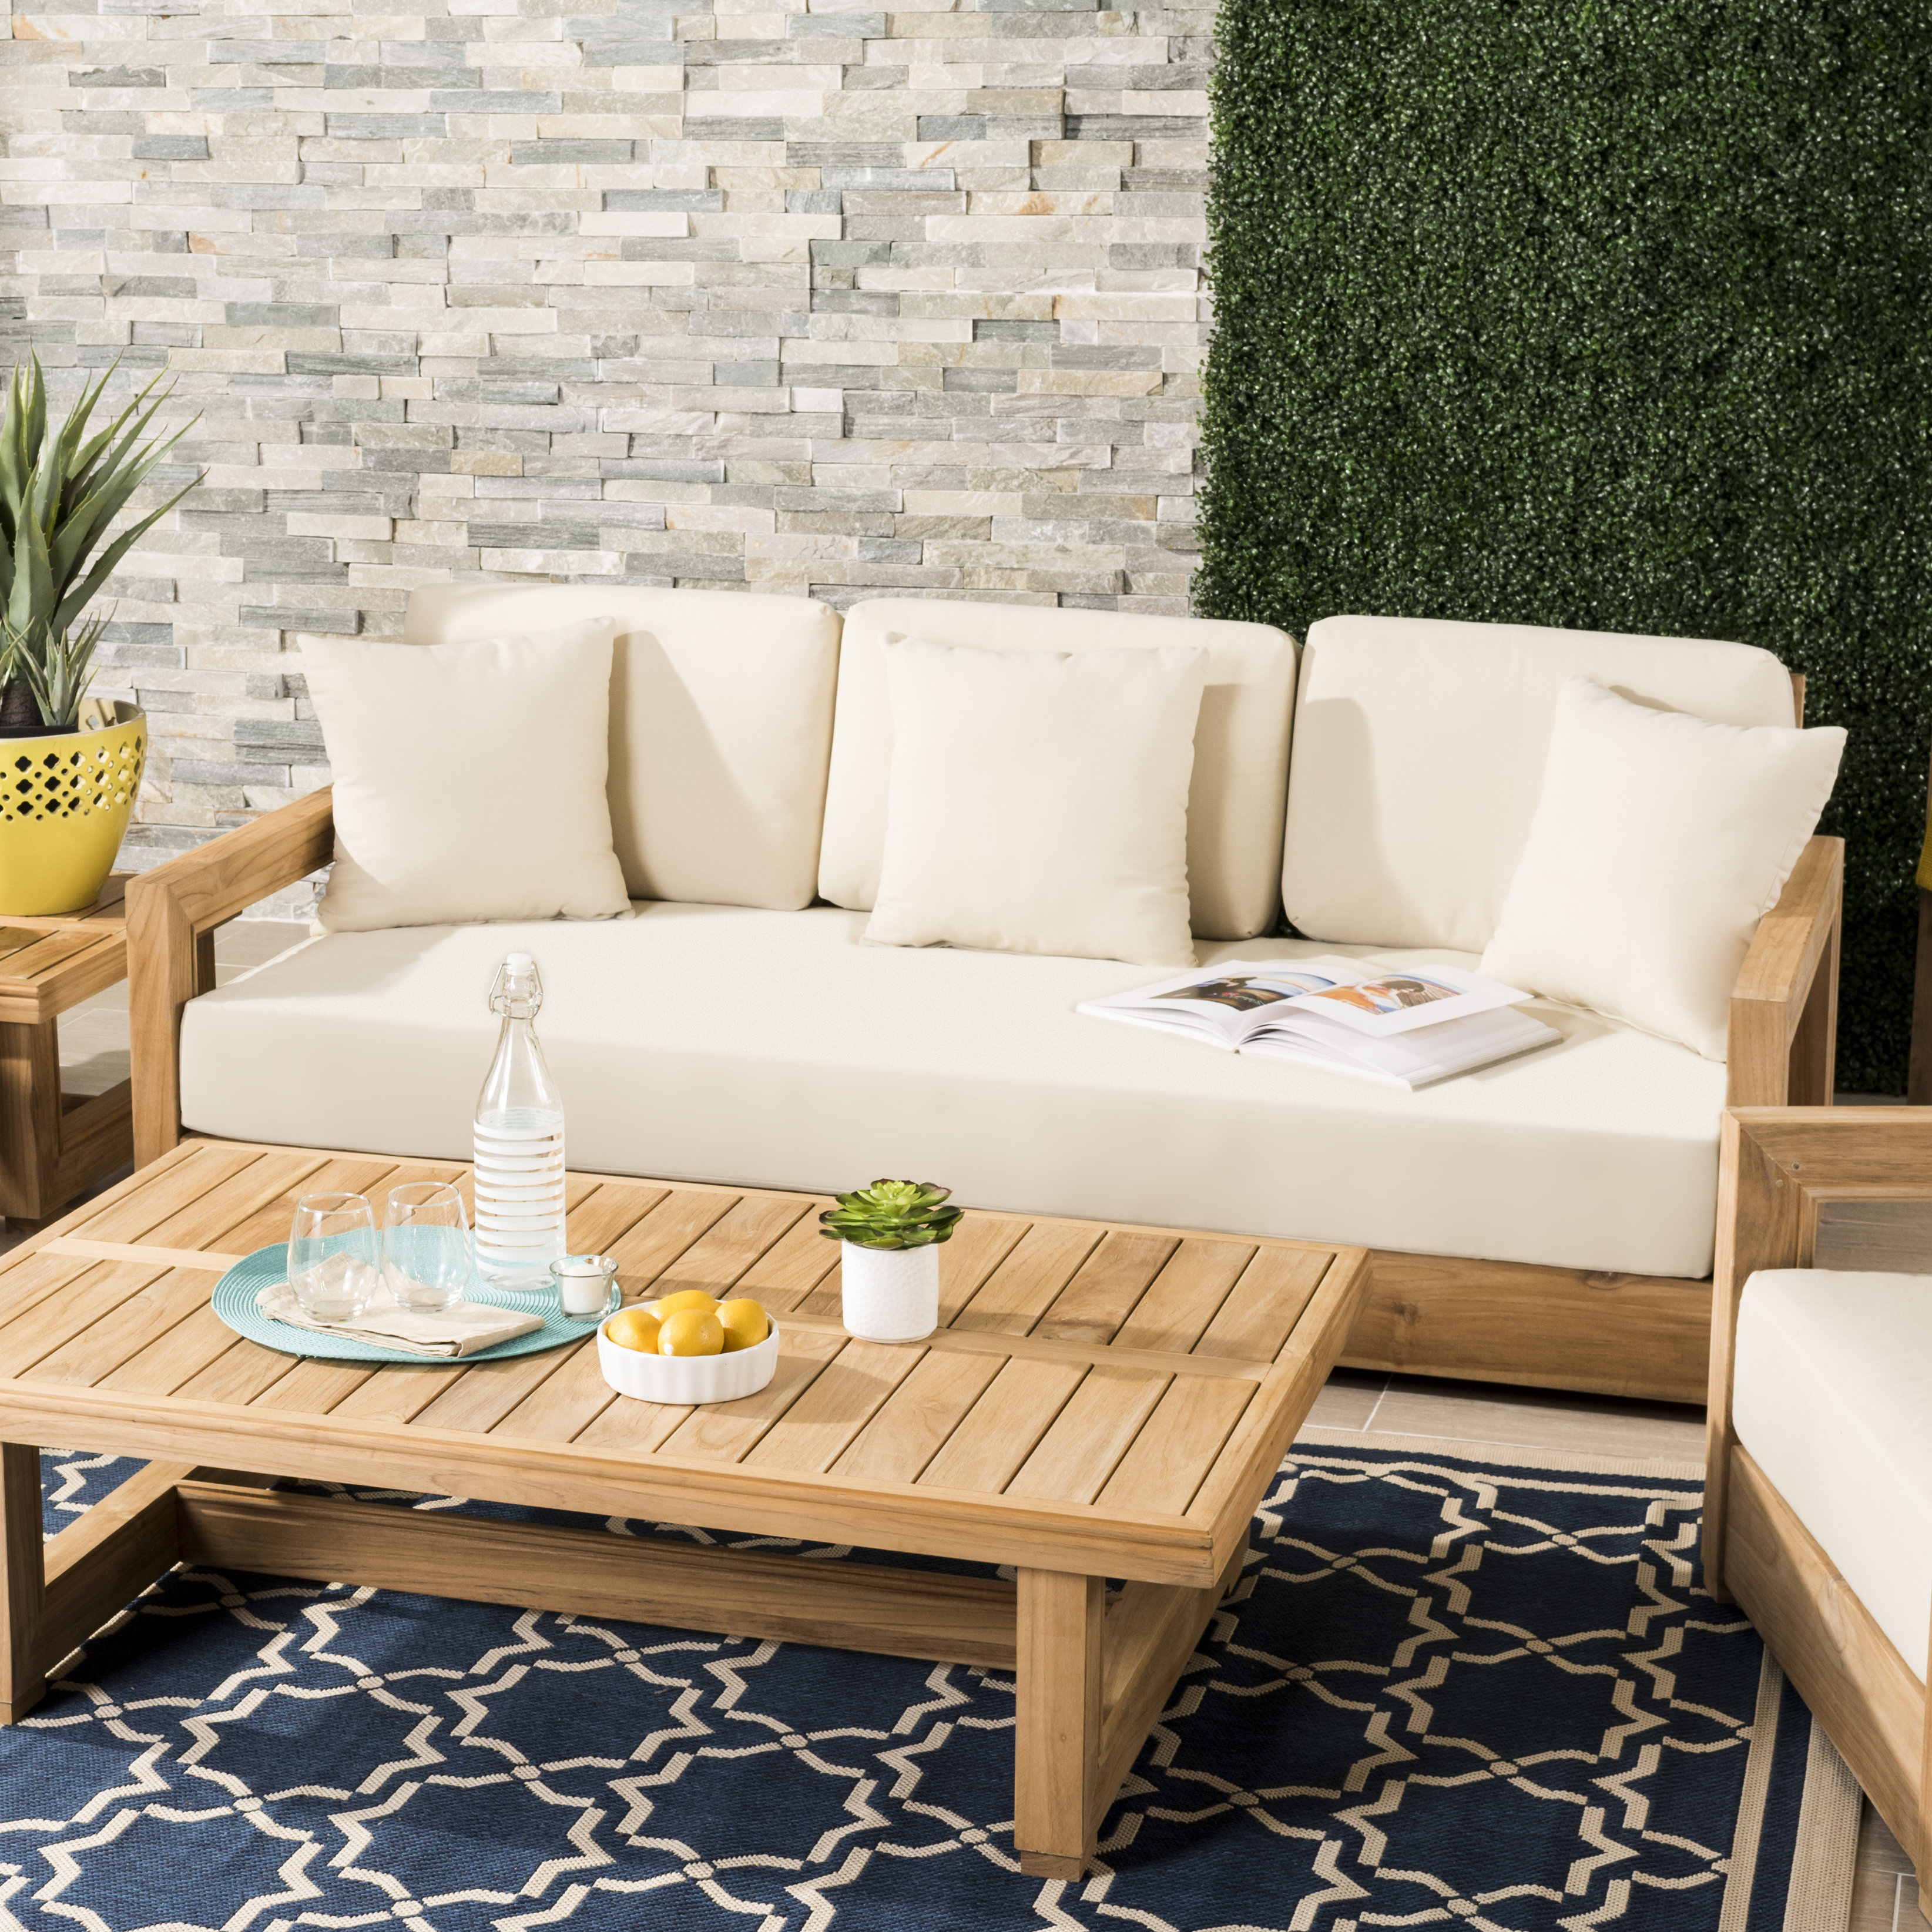 Montford Teak Loveseat With Cushions With Regard To Most Current Brunswick Teak Loveseats With Cushions (View 14 of 20)